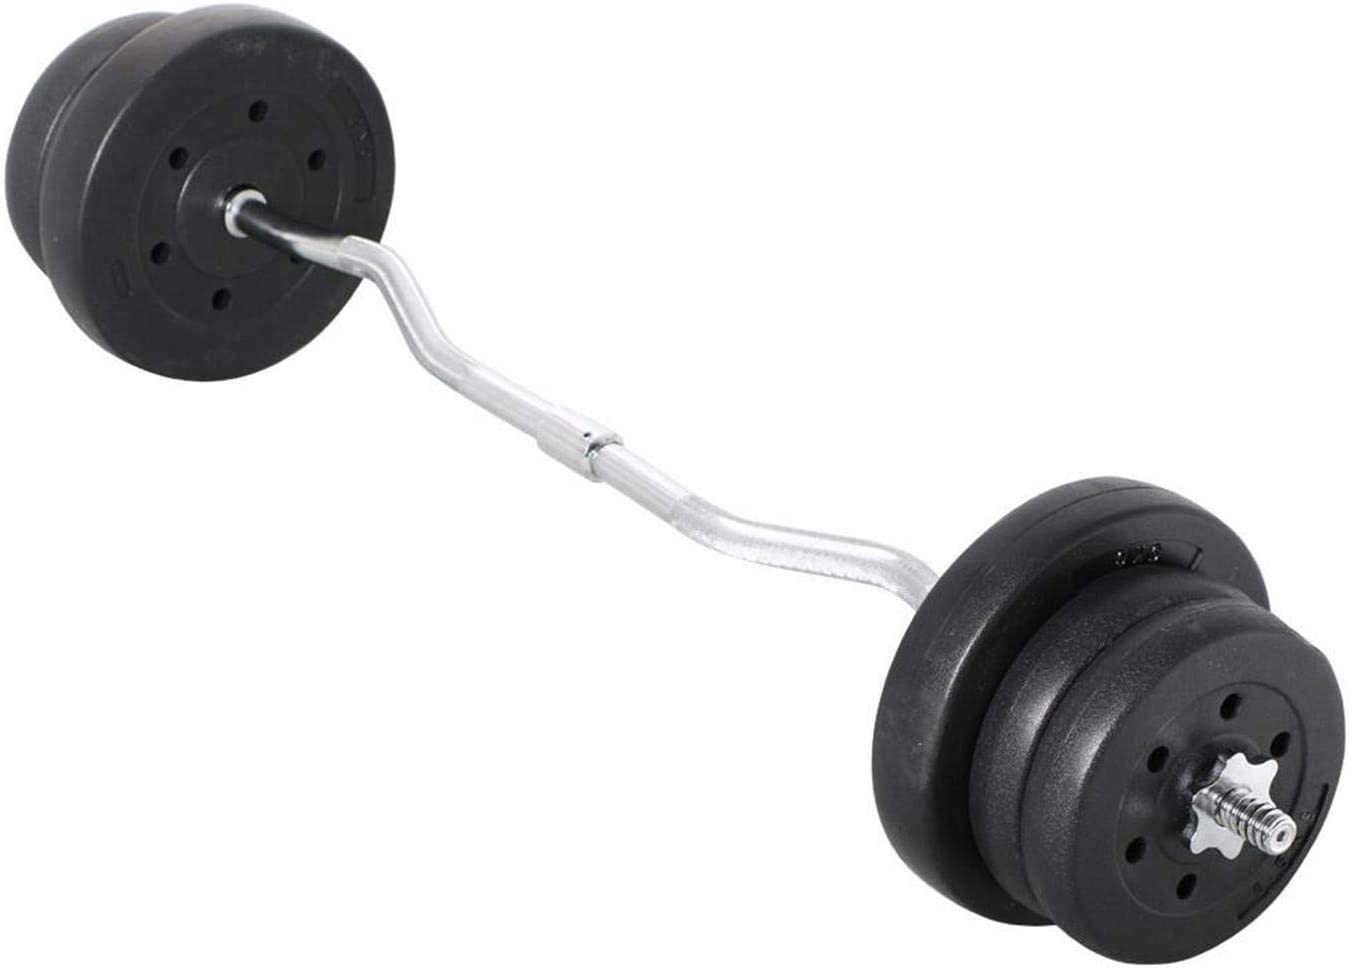 Super popular specialty store 2021 model YAHEETECH 55lb Olympic Barbell Dumbbell Lifting Weight Set E Gym